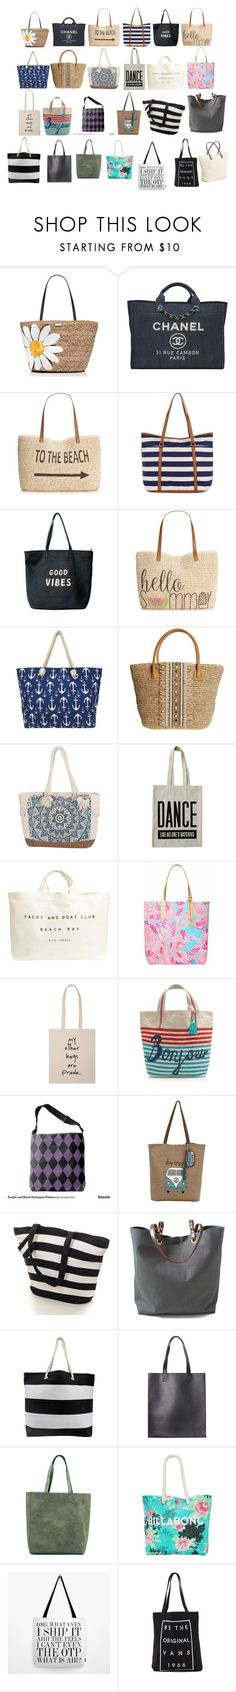 """""""Beach Bags"""" by silentpoetgeek ❤ liked on Polyvore featuring Kate Spade, Chanel, Style & Co., Monsoon, Venus, Skemo, Billabong, ALPHABET BAGS, Lilly Pulitzer and The Sak"""